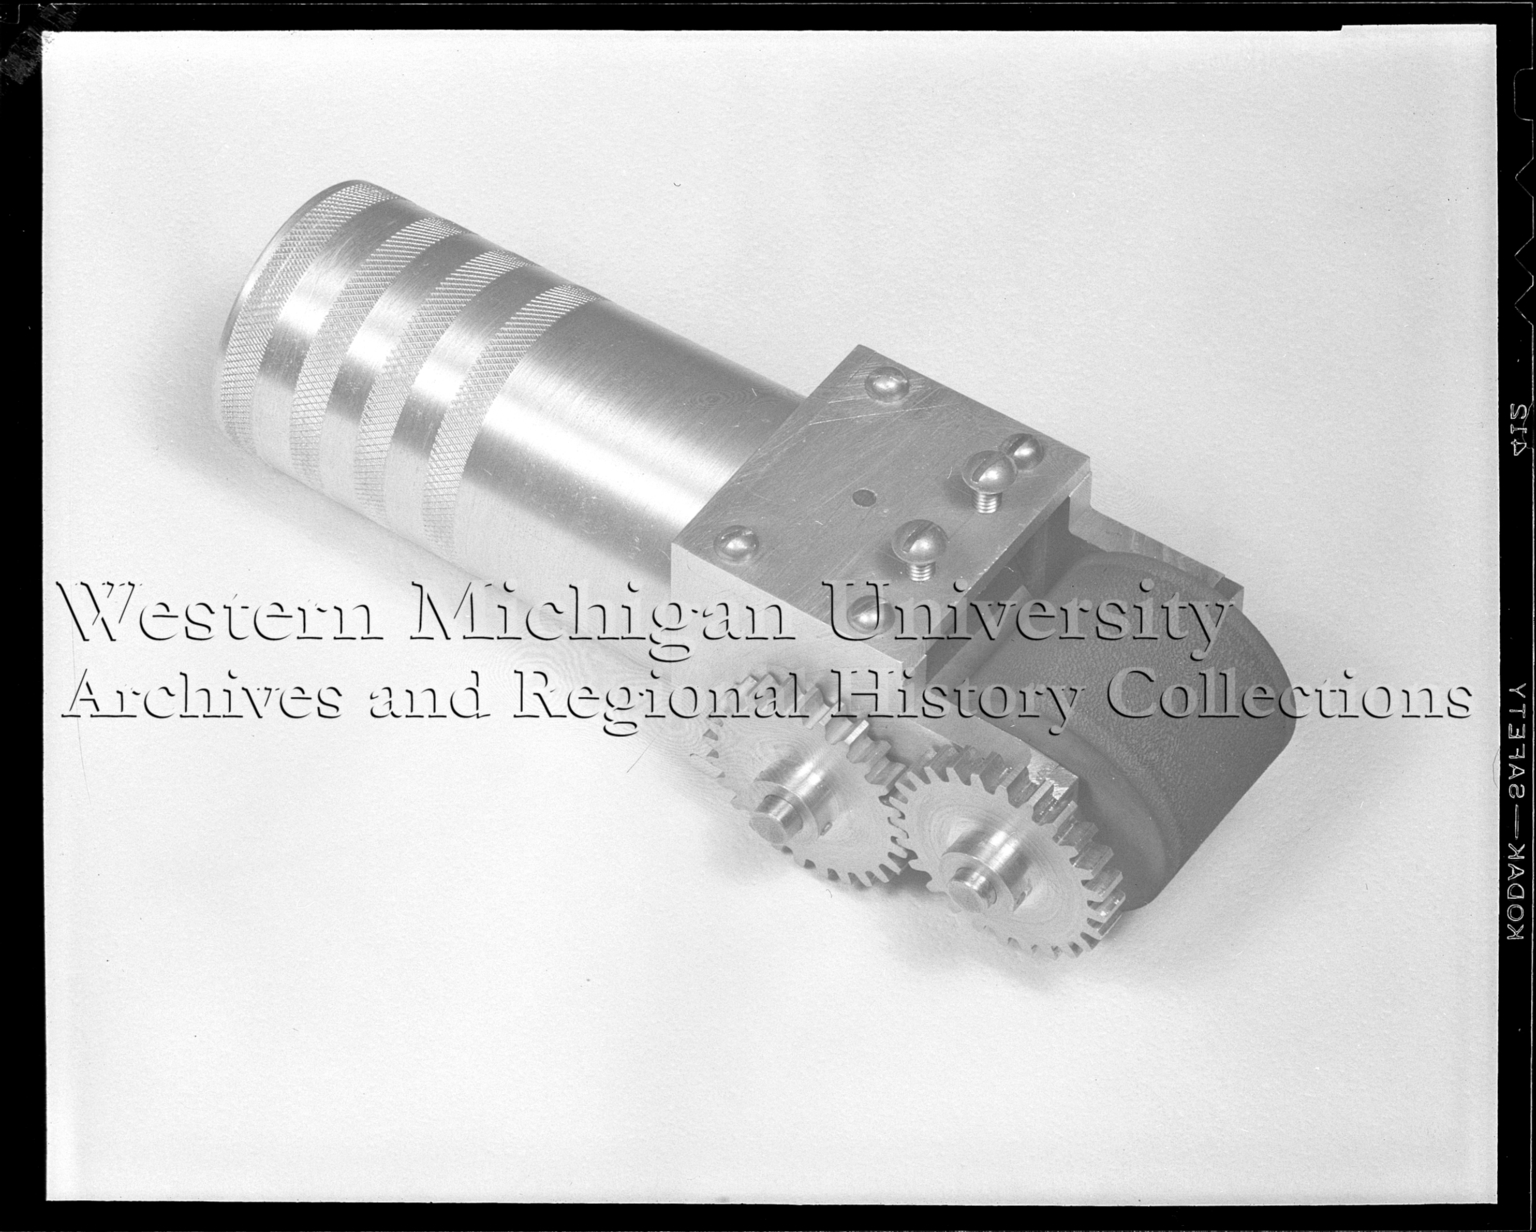 Splicing tool for St. Regis Paper Co.